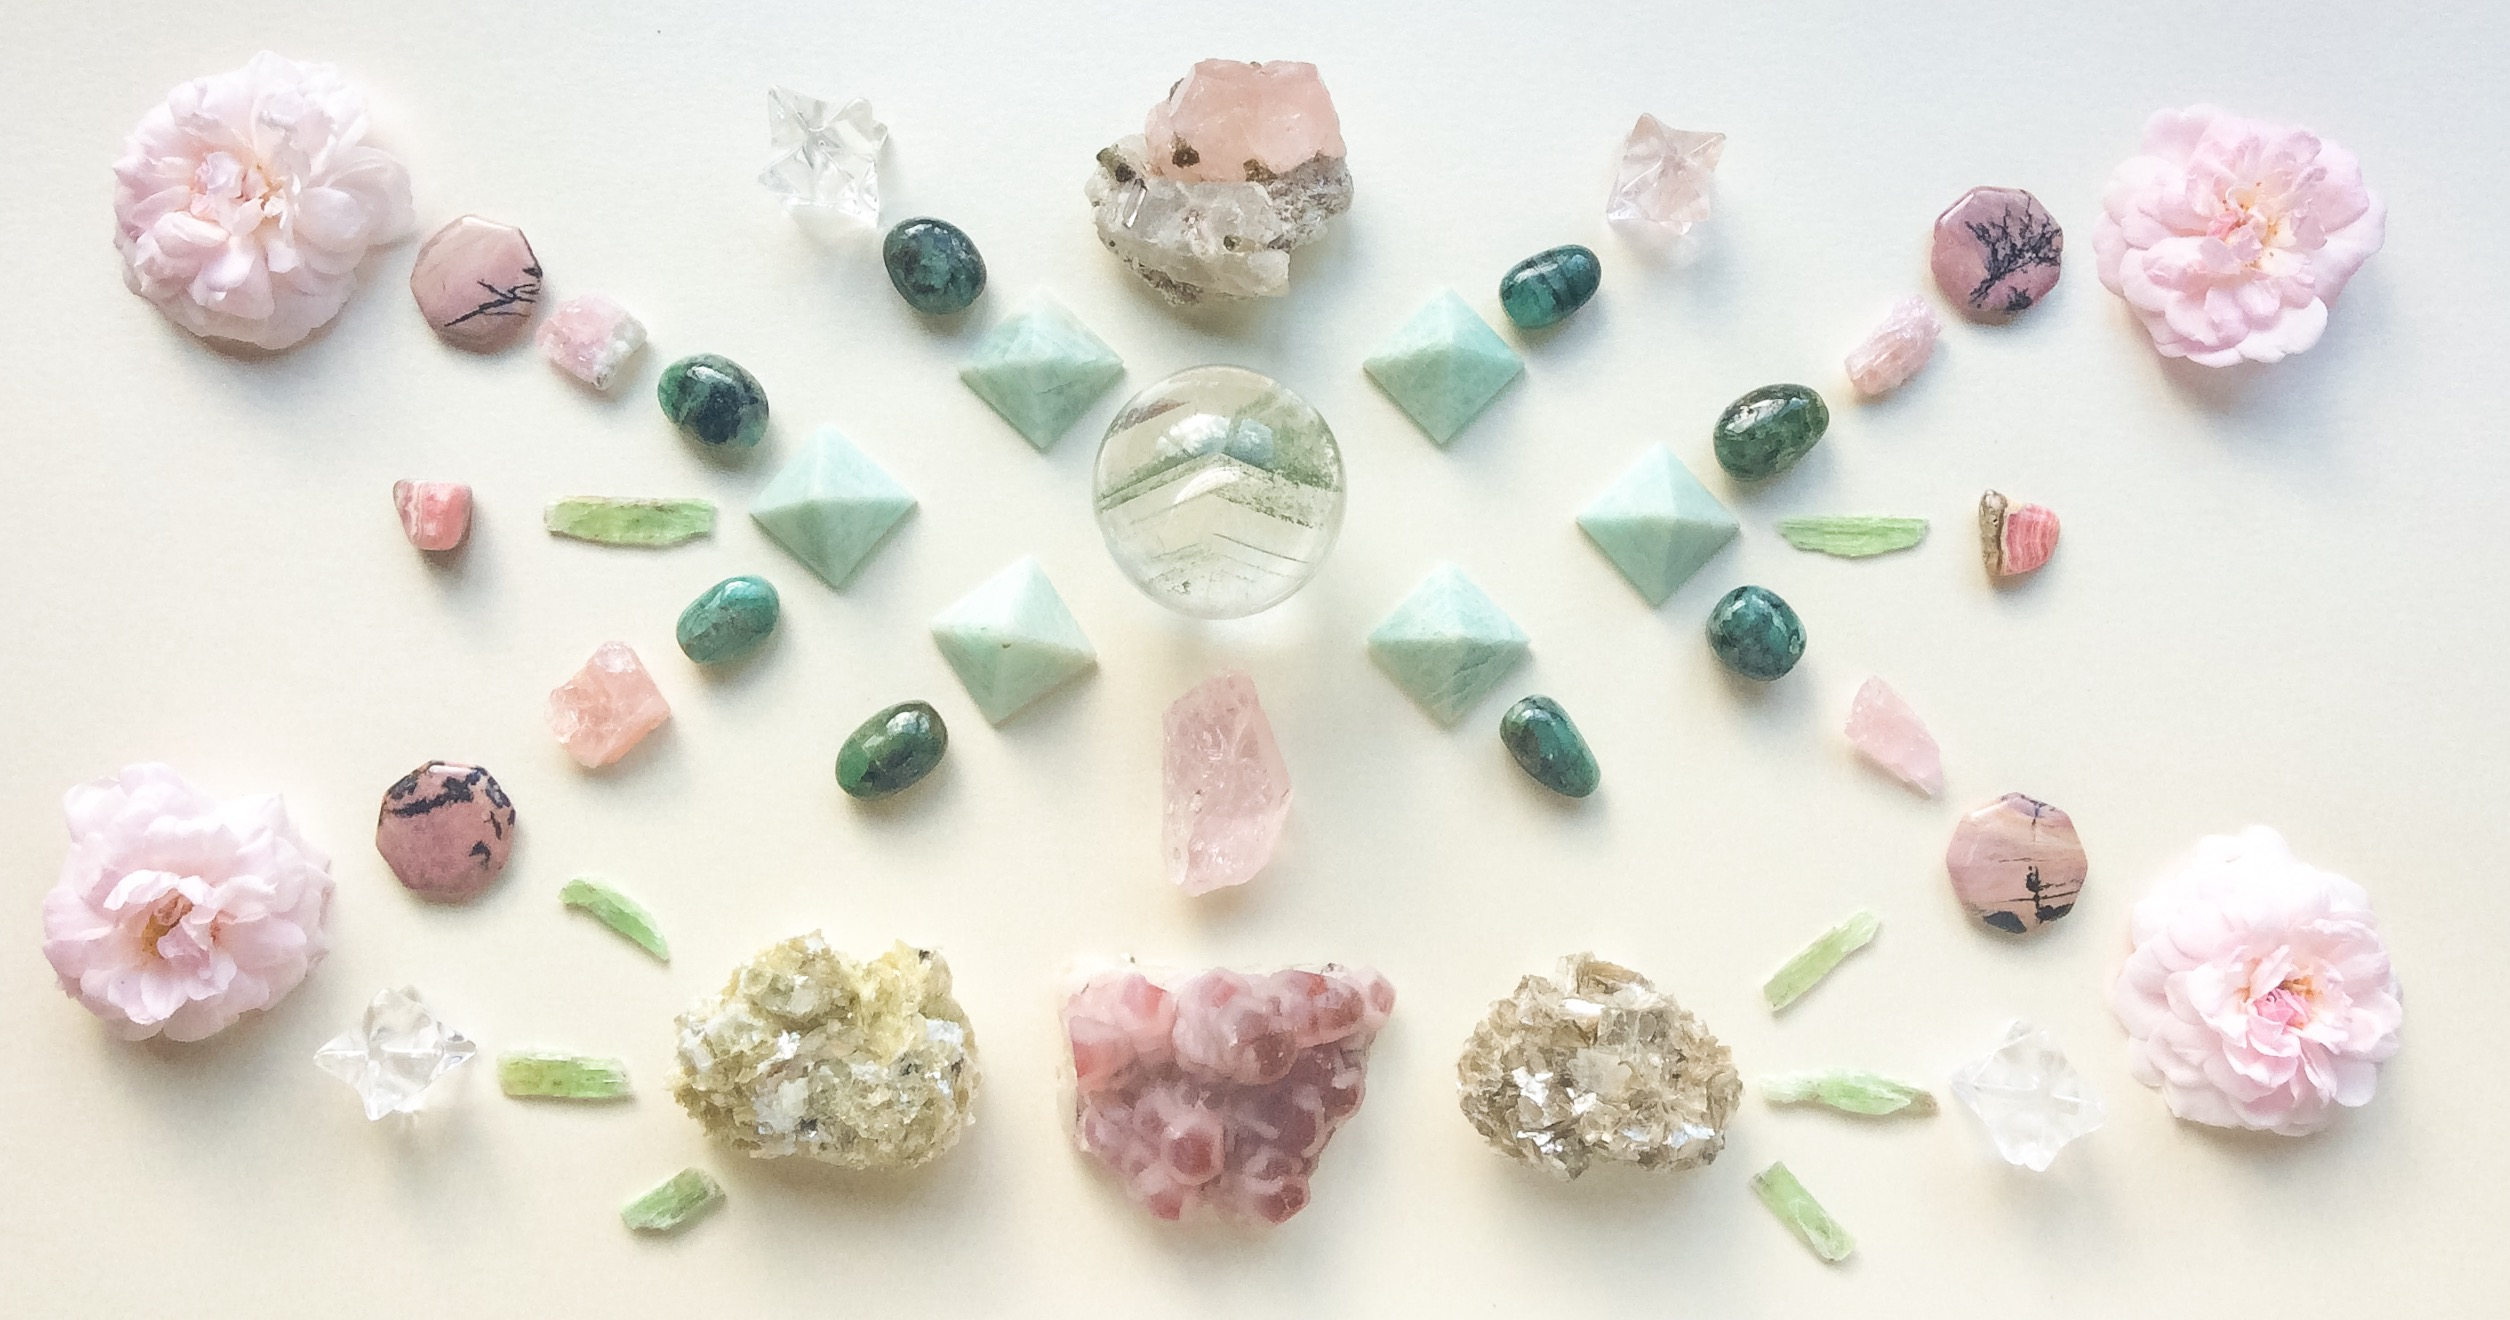 Phantom Chlorite Quartz, Morganite, Morganite with Dravite and Quartz, Cobalto Calcite, Amazonite, Emerald, Green Kyanite, Rodochrosite, Rhodonite, Star Muscovite, Quartz and Roses from our garden